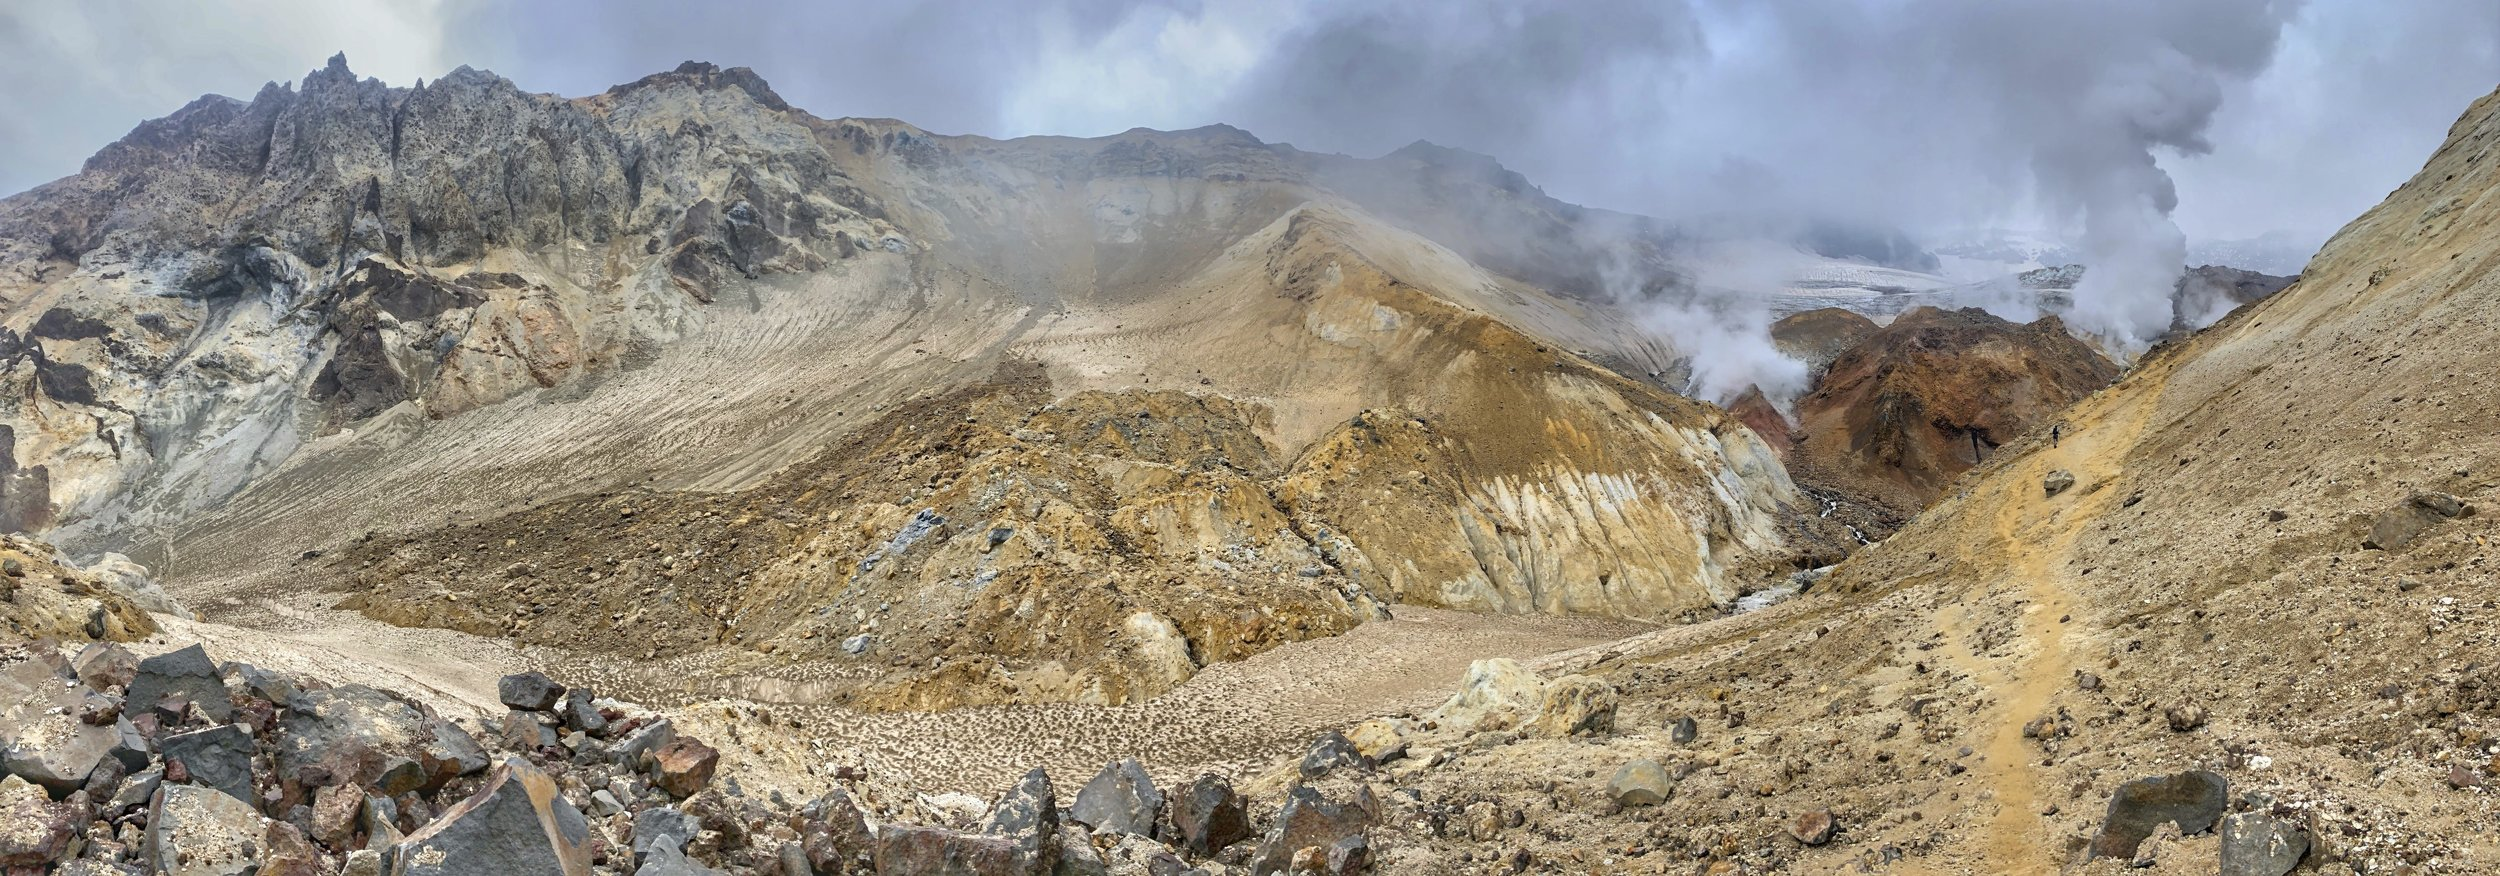 The pano view of the fumarole fields.